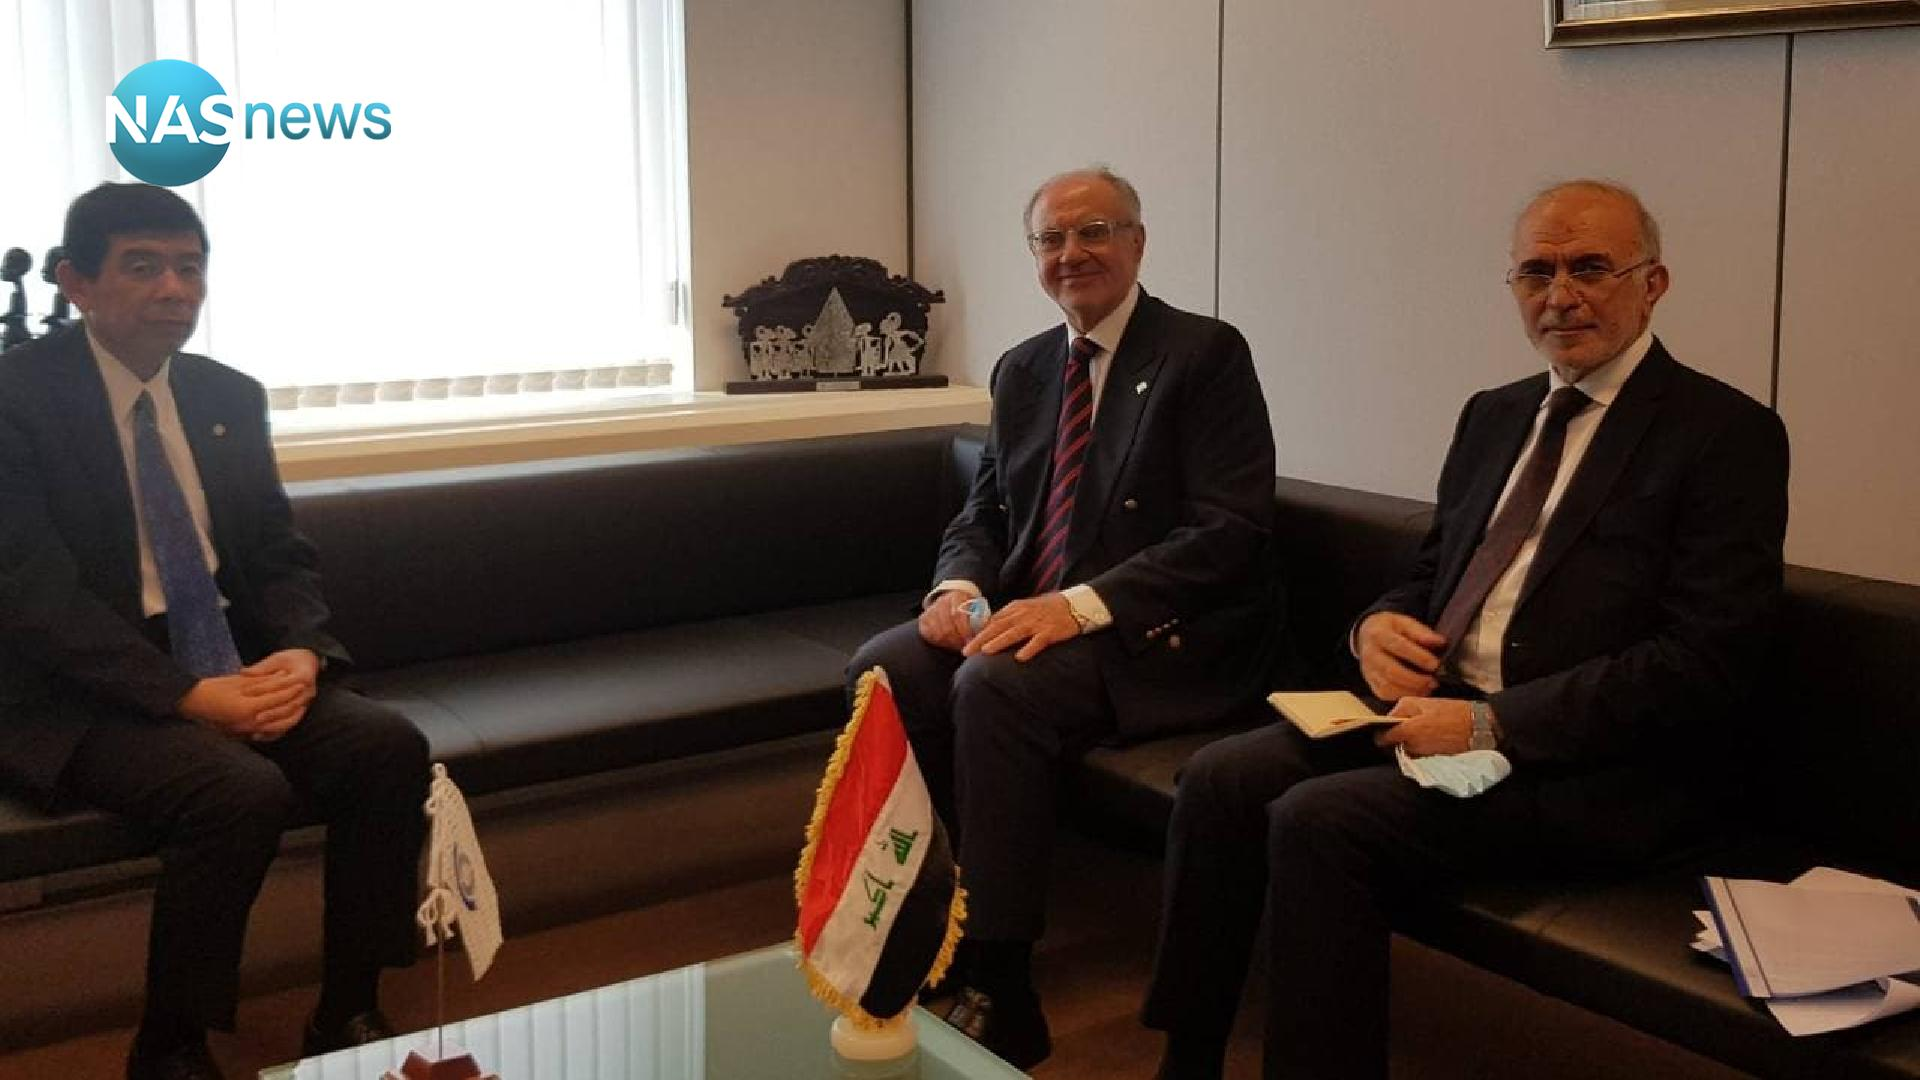 Discussions between the Iraqi Minister of Finance and the Secretary General of the International Customs Organization